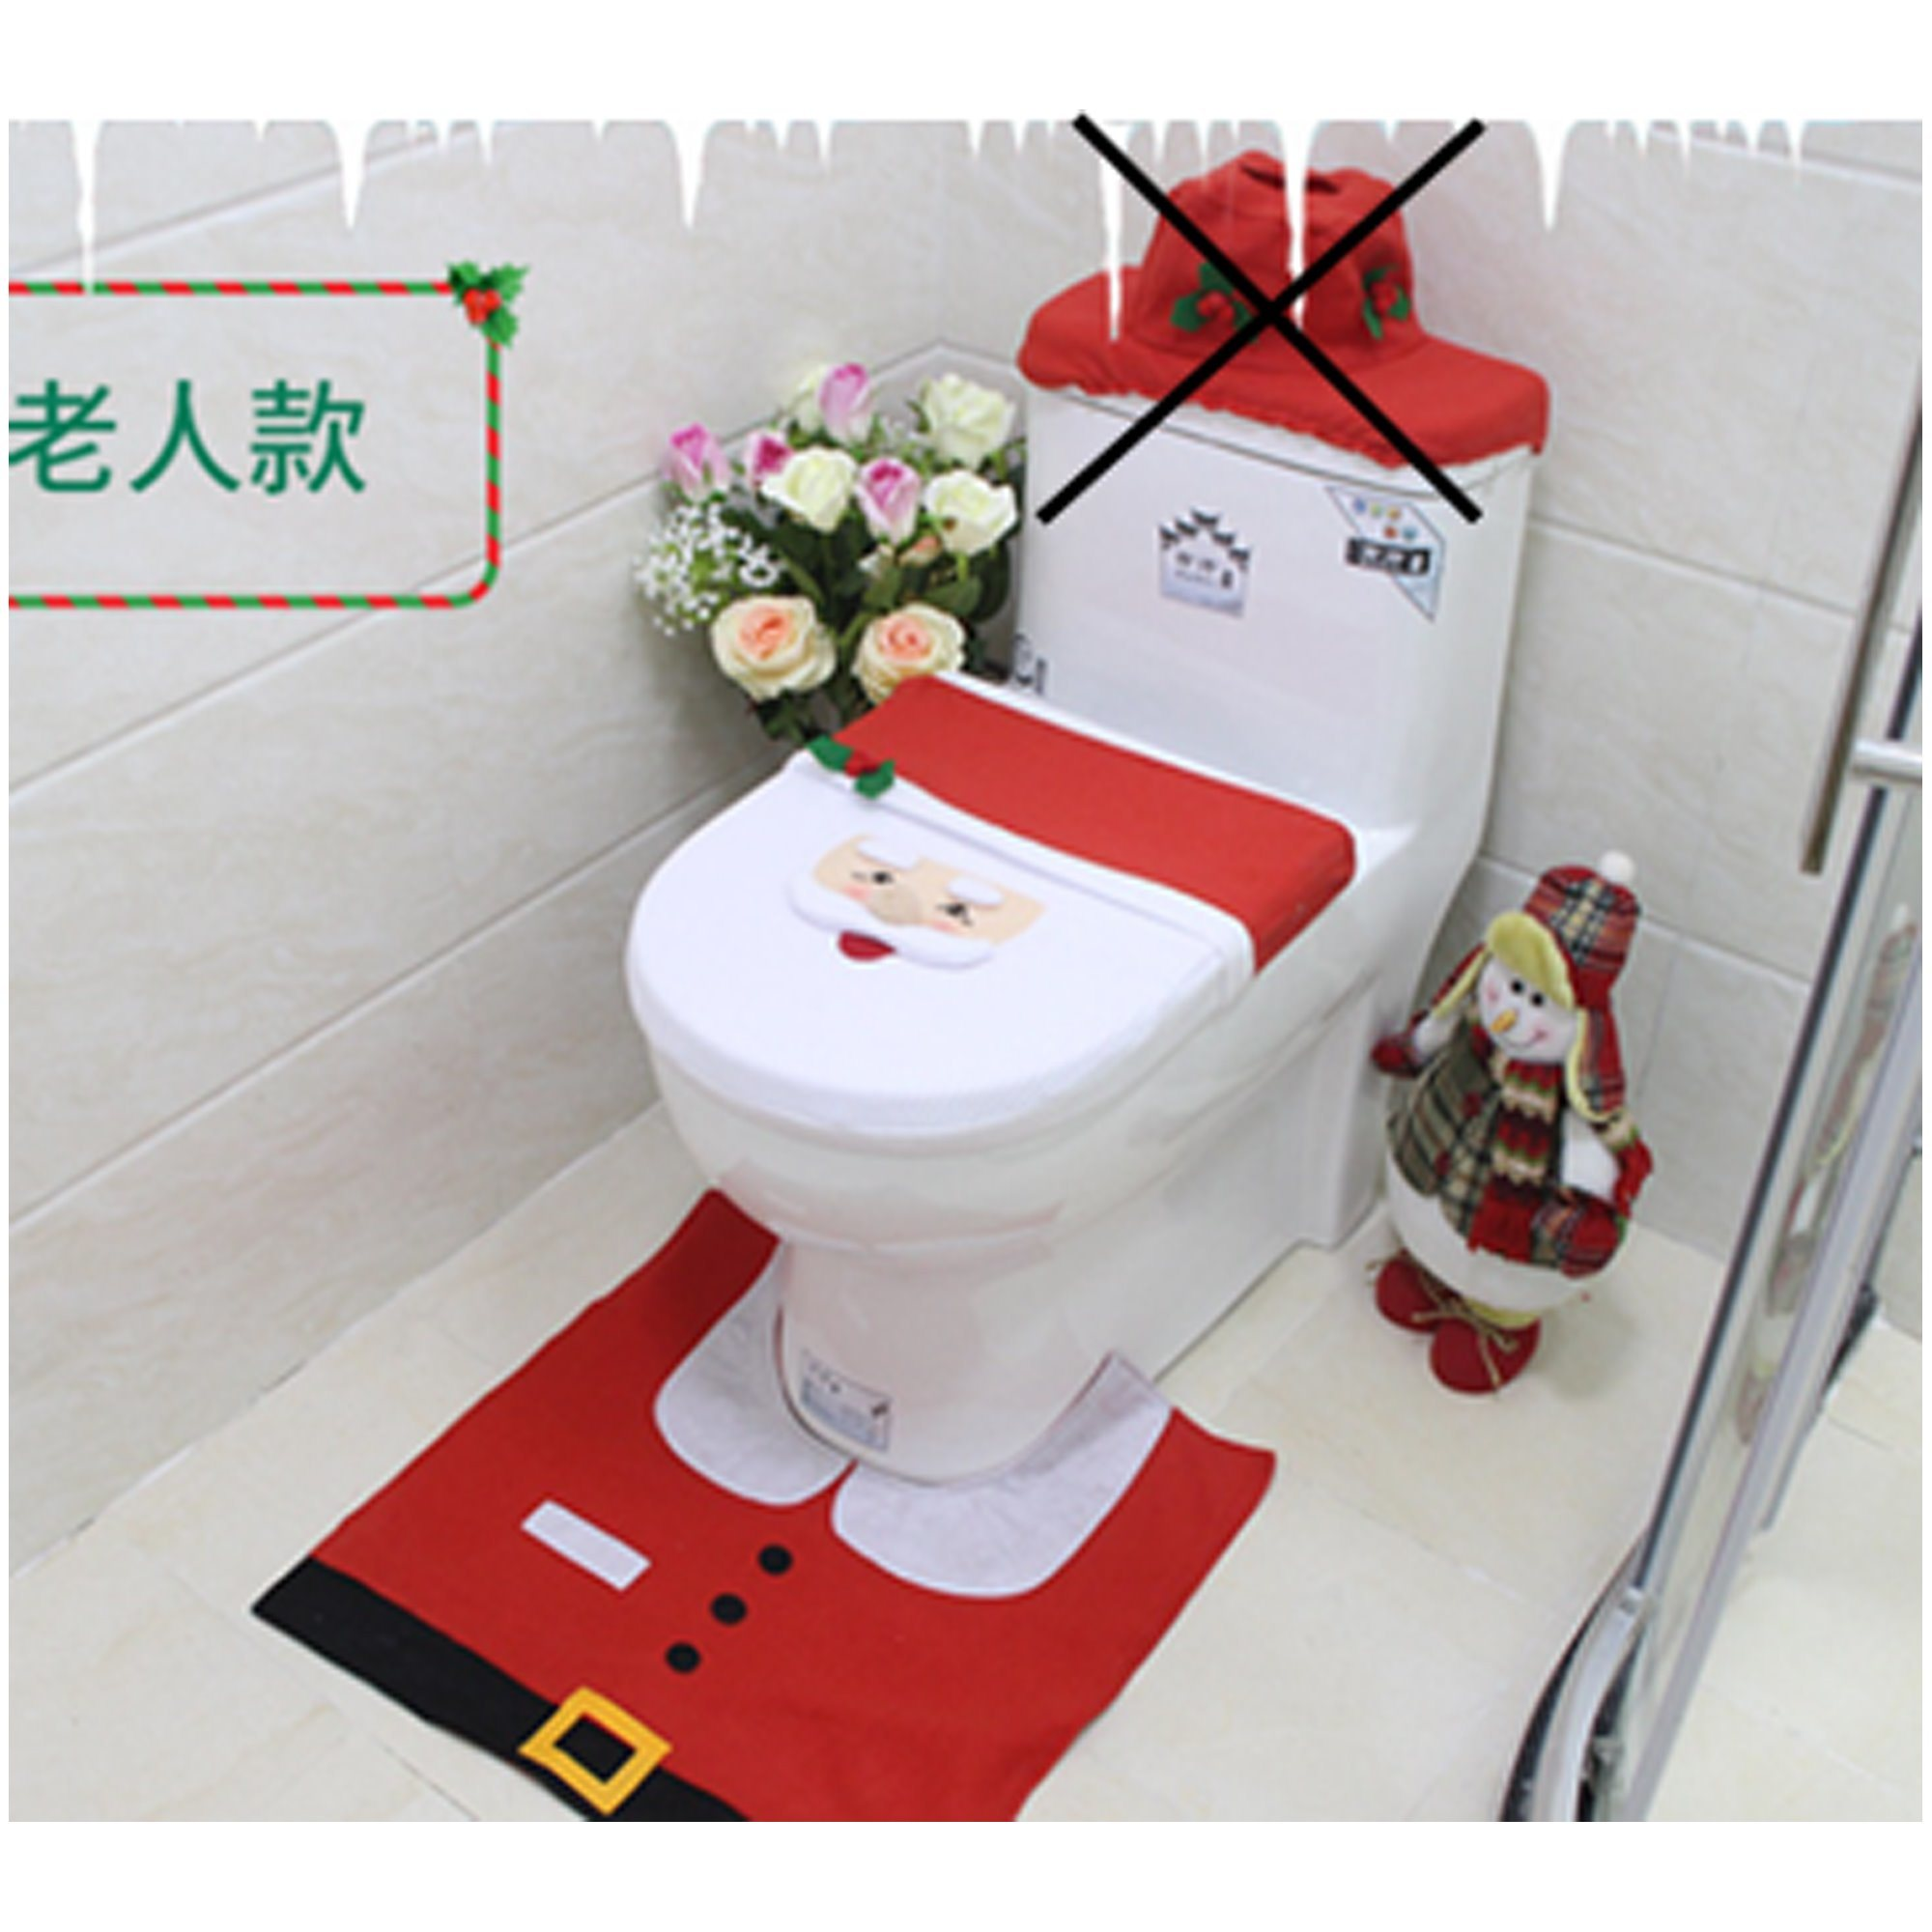 China Manufacturer Texpro 2021 New Toilet Seat Cover Set Christmas Toilet Cover Decorations Xmas Bathroom Decorations For Christmas Holiday Home Decor China Toilet Seat And Cover Set Price